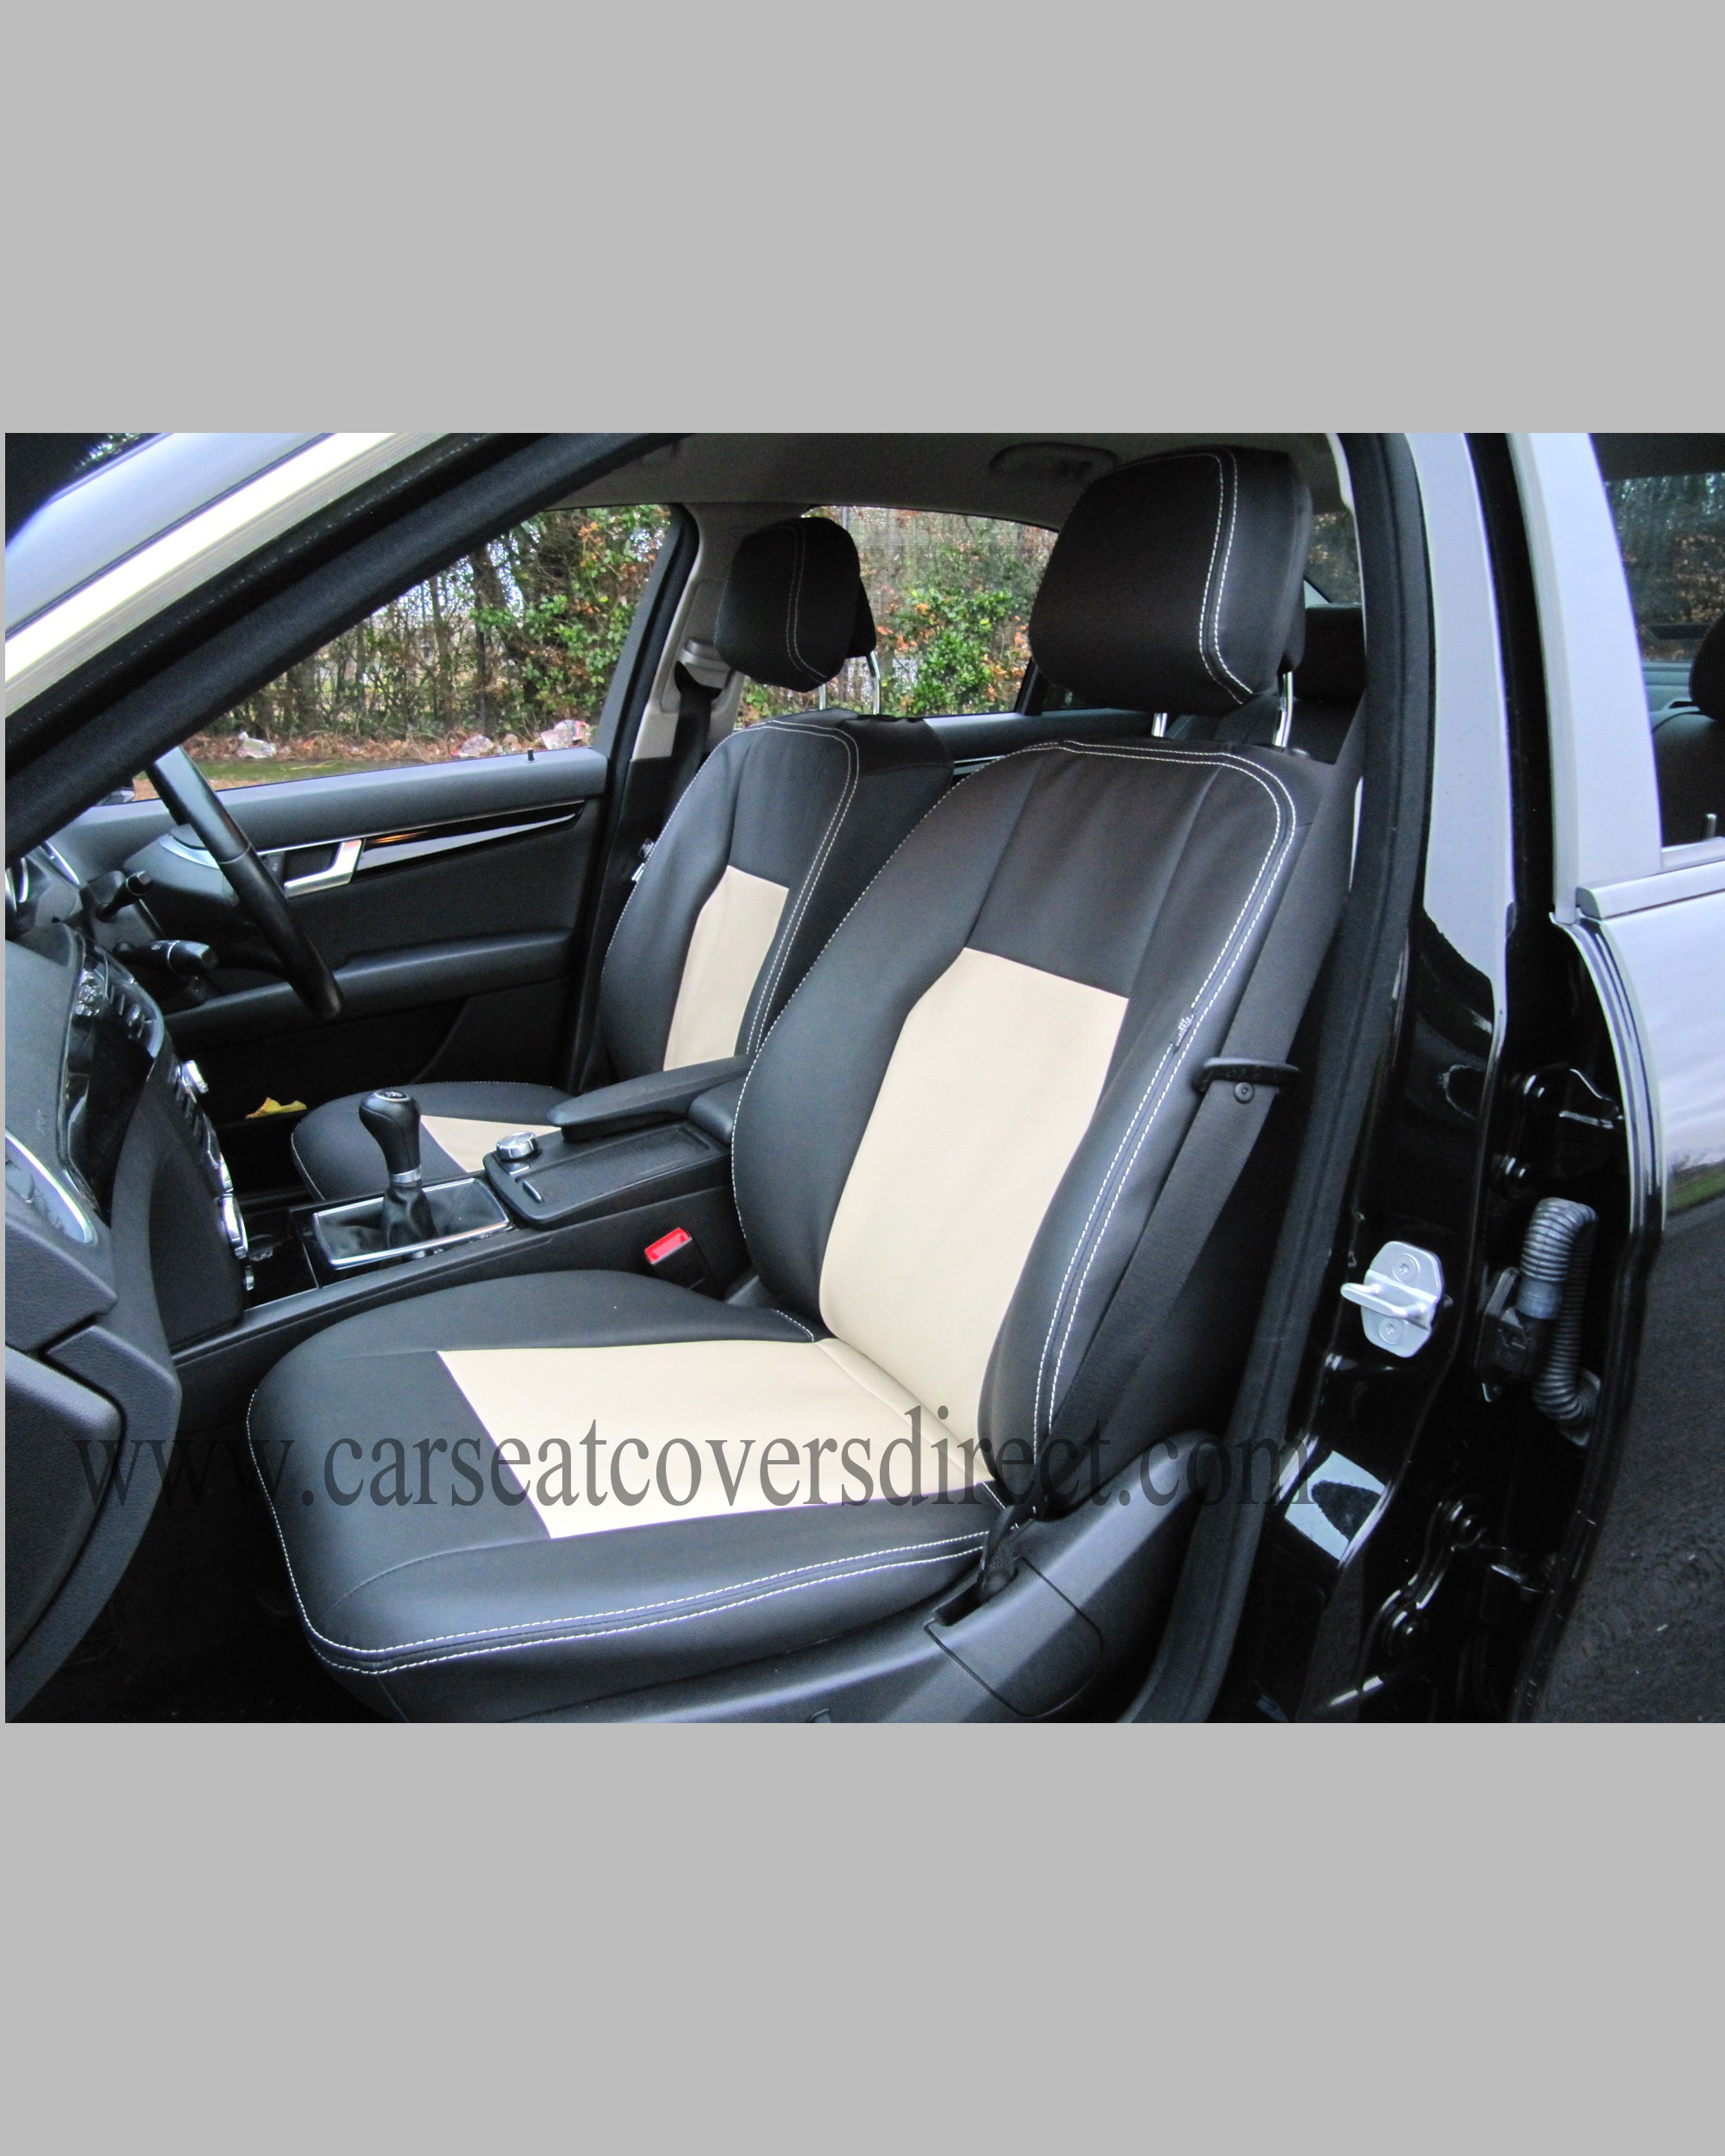 mercedes c class w204 black beige seat covers car seat covers direct tailored to your choice. Black Bedroom Furniture Sets. Home Design Ideas